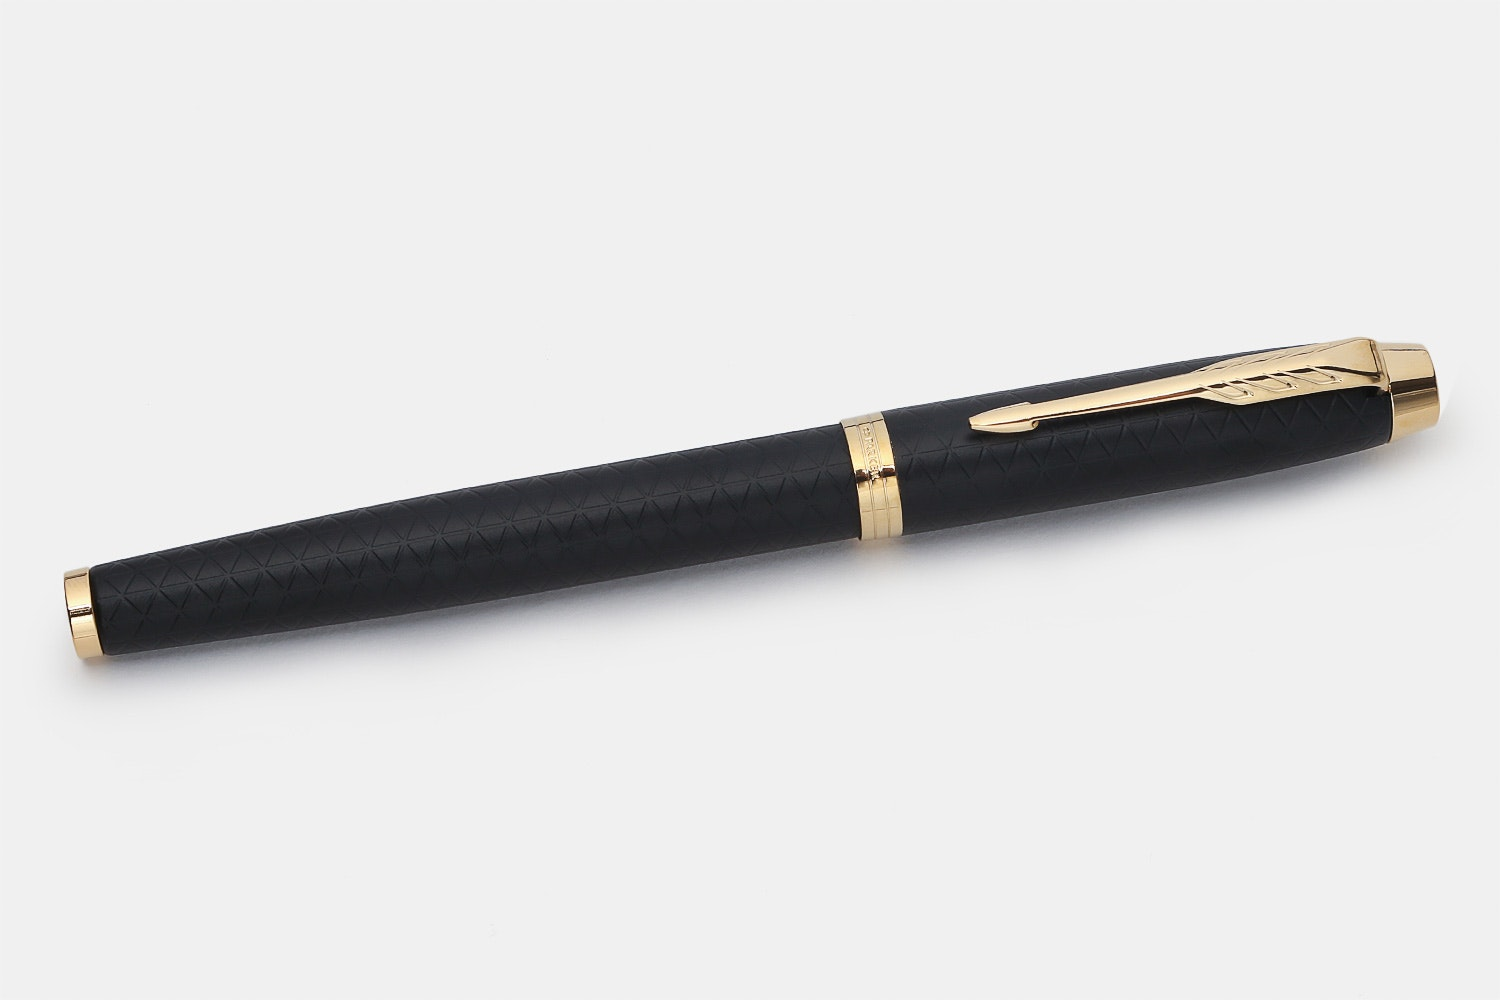 Parker IM Premium - Black w/ Gold Trim (+ $15)